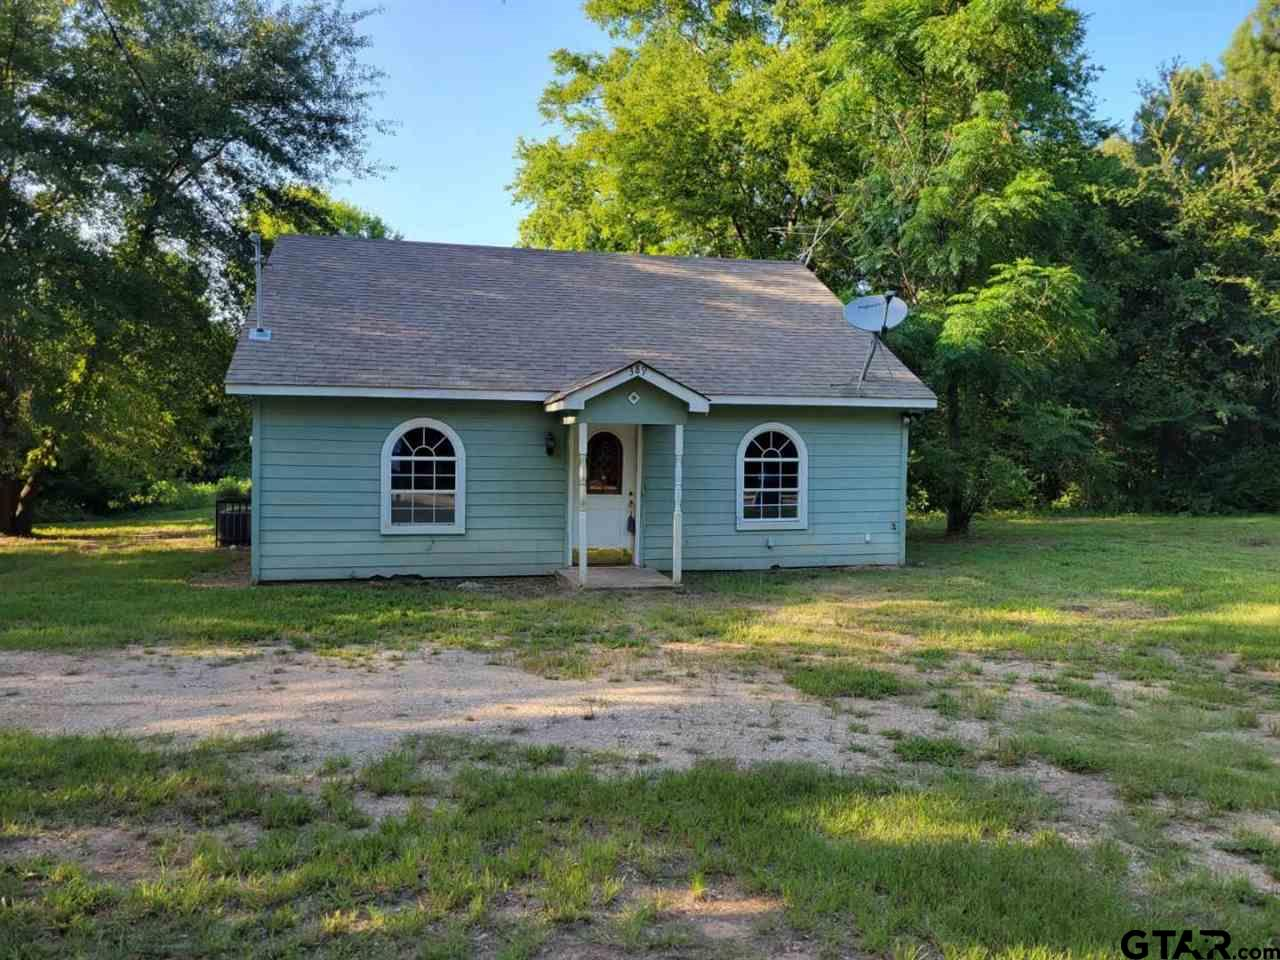 2 Bedroom - 1 Bath - 2 Car Carport  Cozy Cottage Close to Everything Hawkins Has to Offer, Needs Work But Has Good Bones